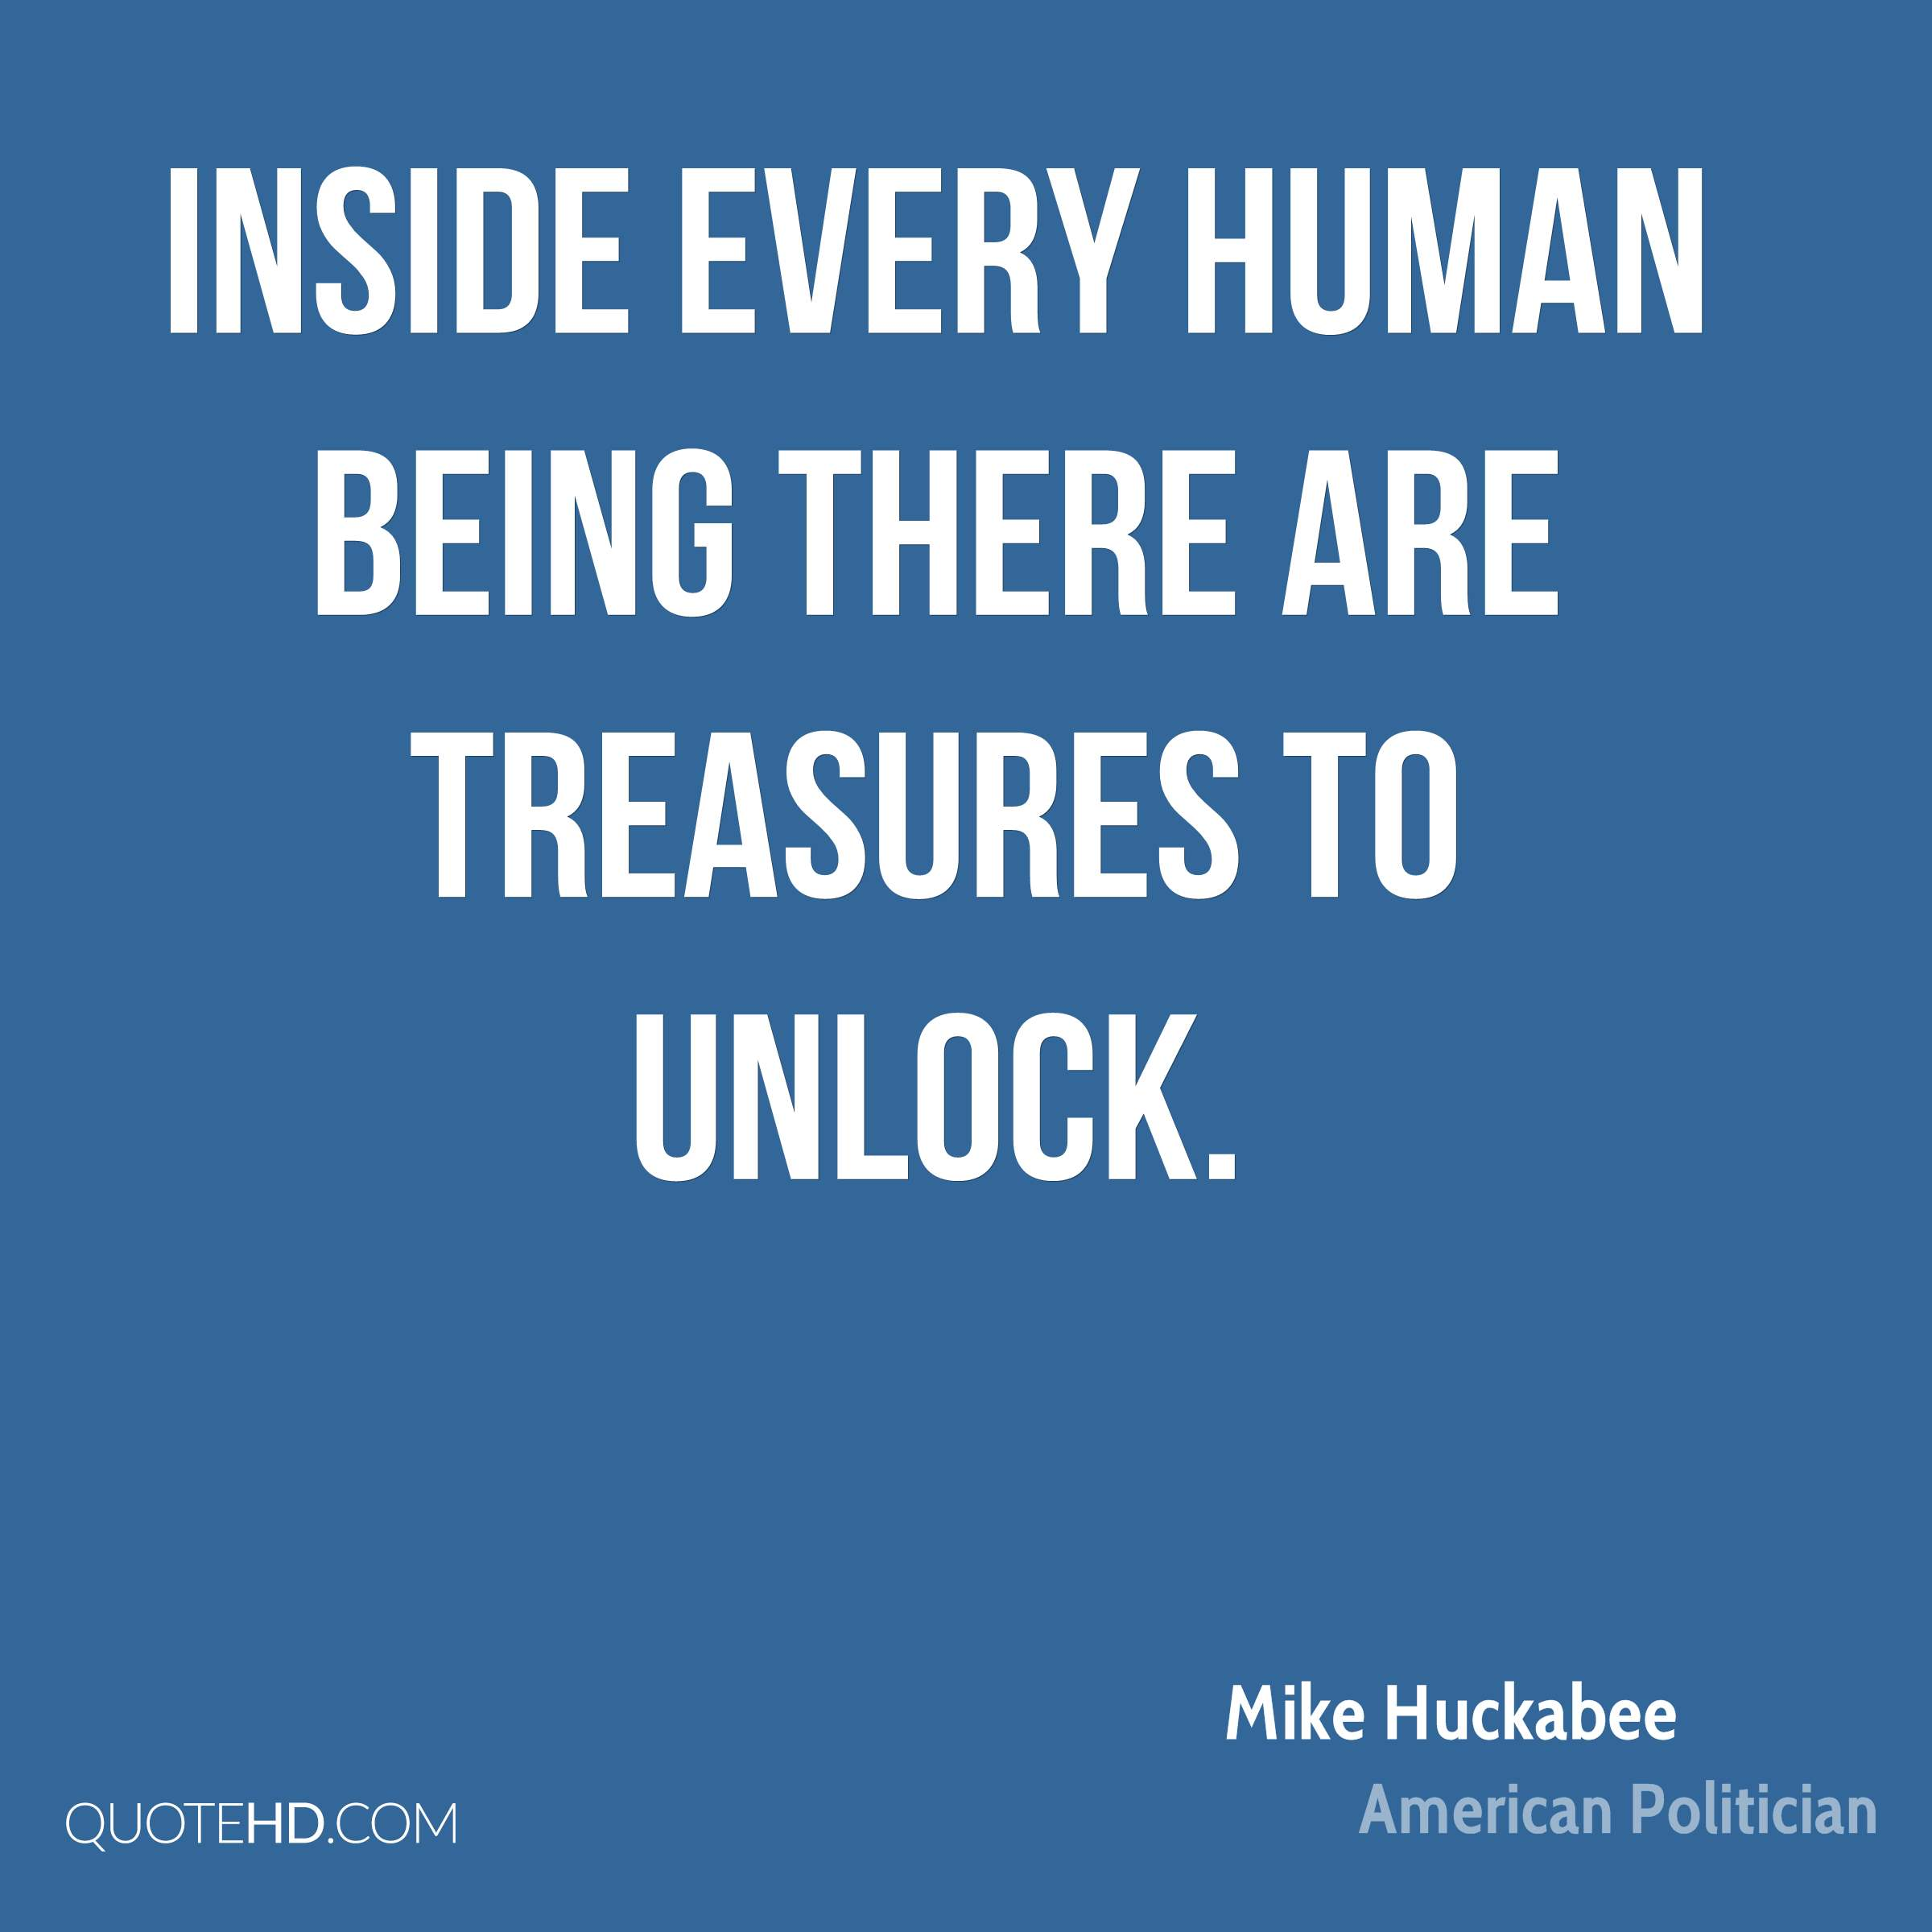 Inside every human being there are treasures to unlock.